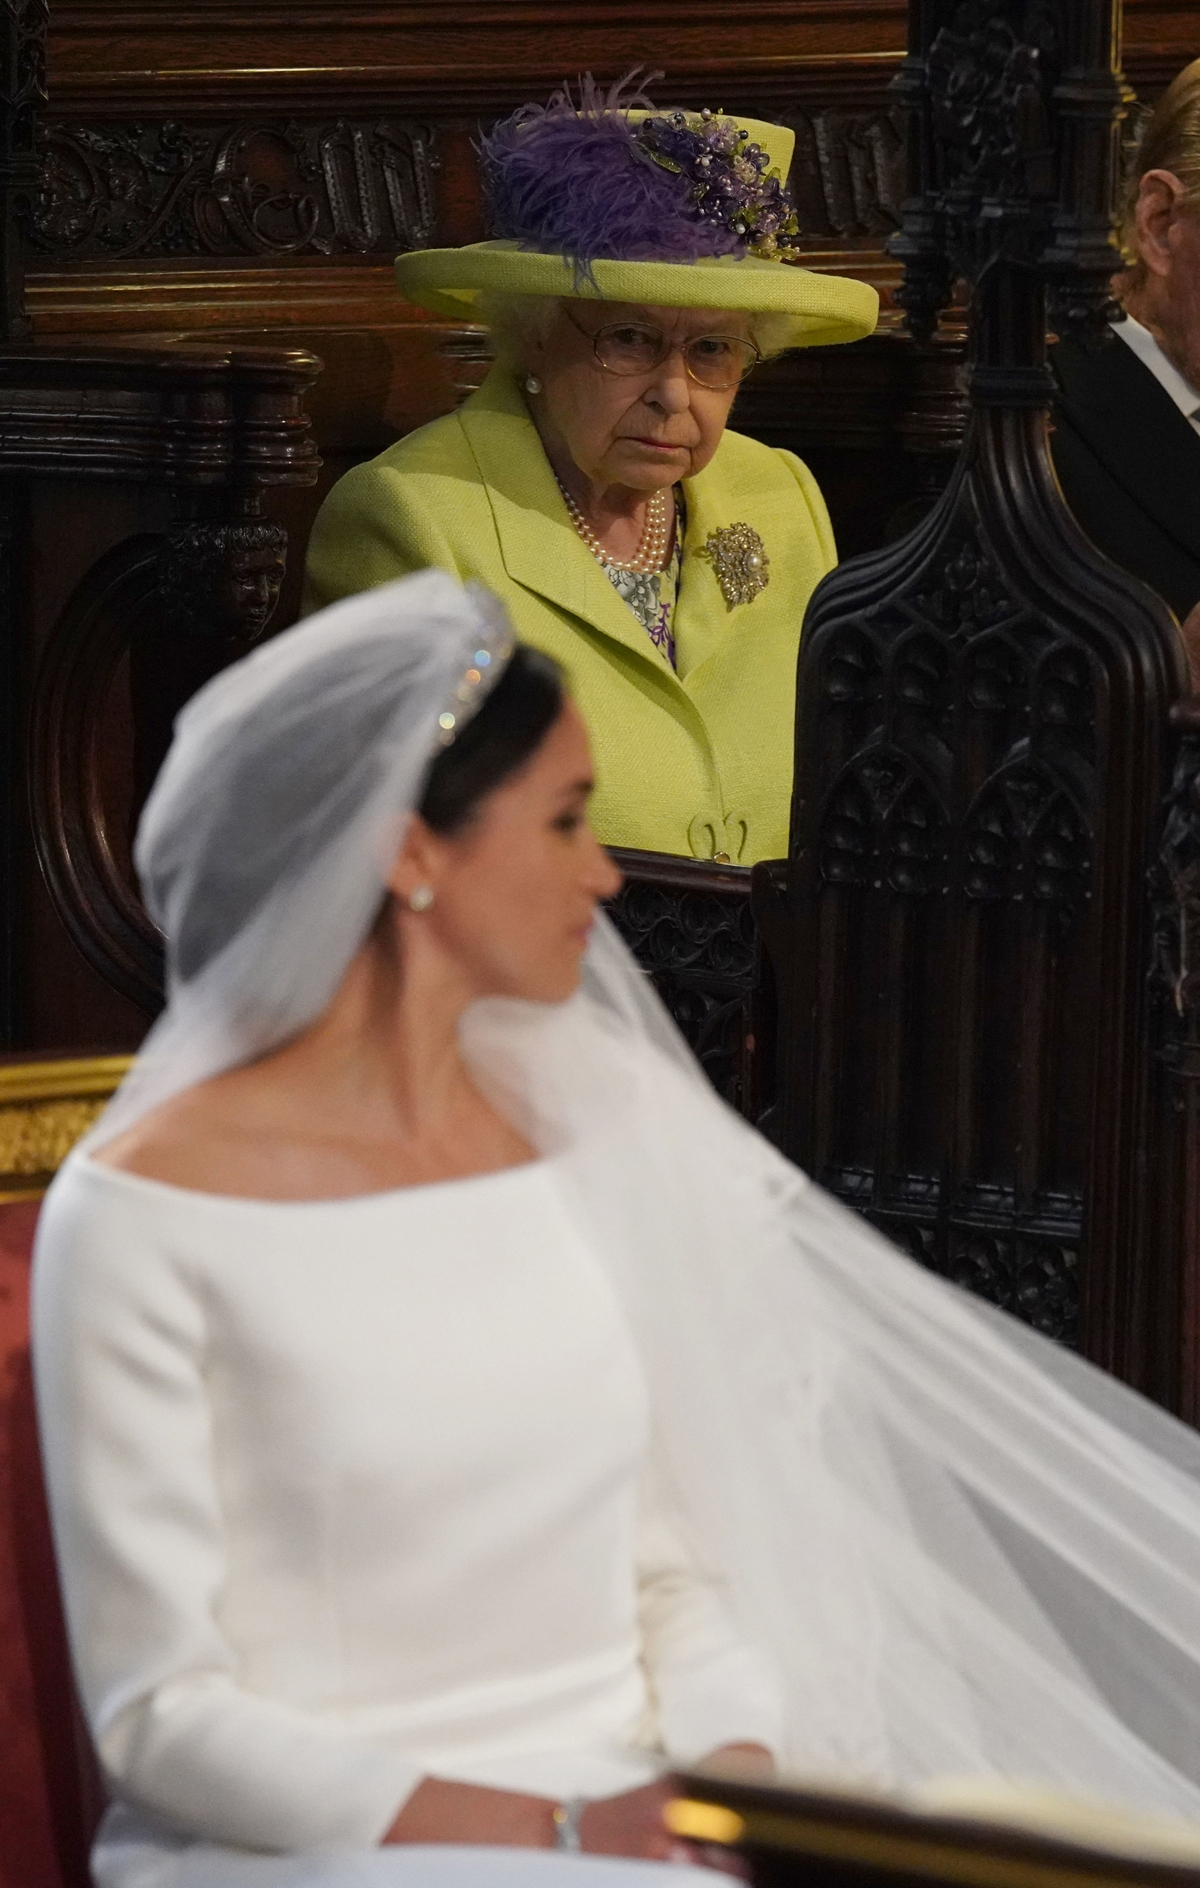 Britain's Queen Elizabeth II looks on during the wedding ceremony of Britain's Prince Harry, Duke of Sussex and US actress Meghan Markle in St George's Chapel, Windsor Castle, in Windsor, on May 19, 2018.